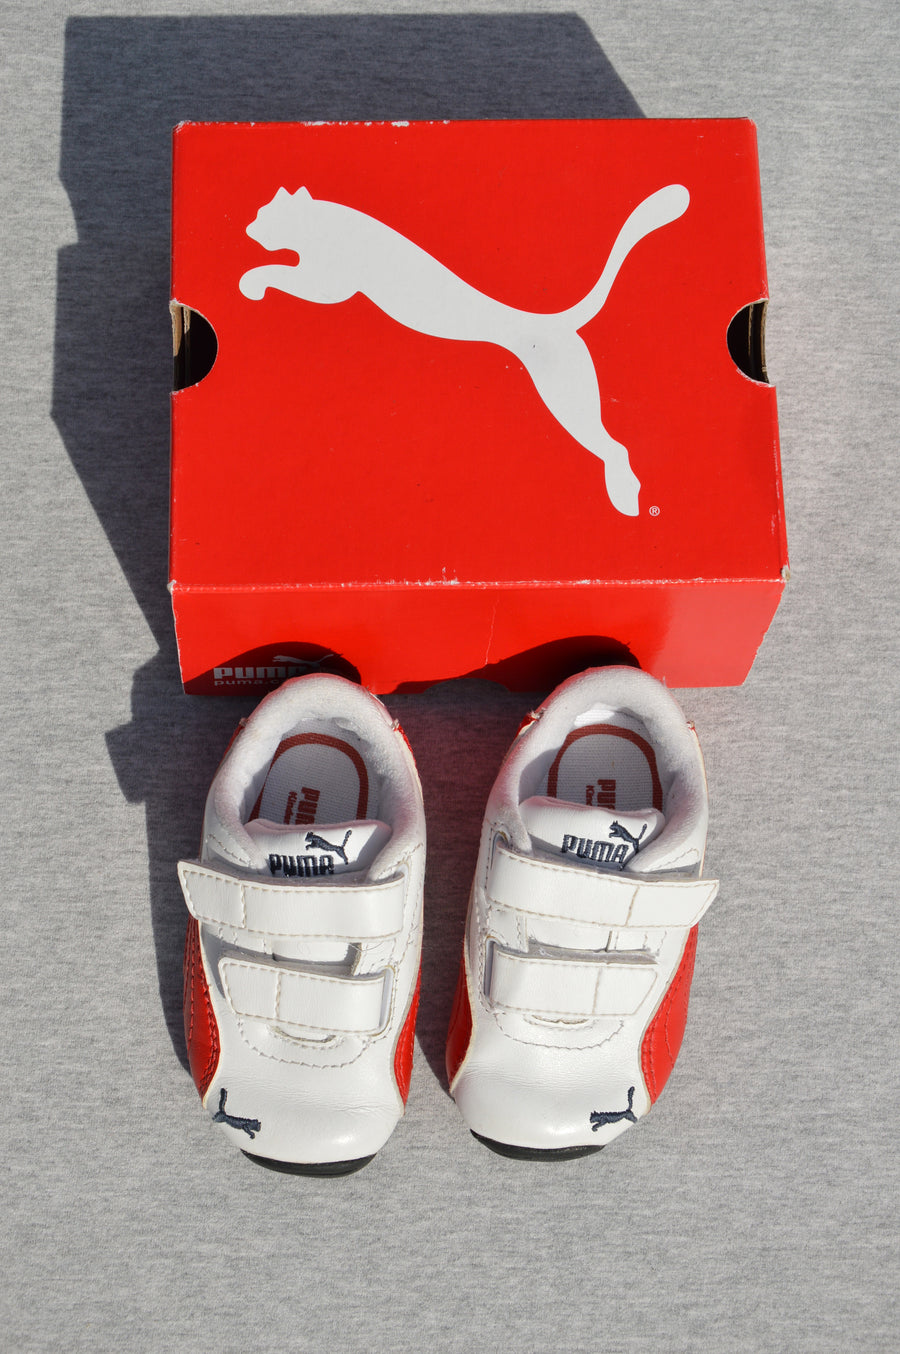 Puma - brand new - white & red trainers (Drift Cat II), size NZ 3